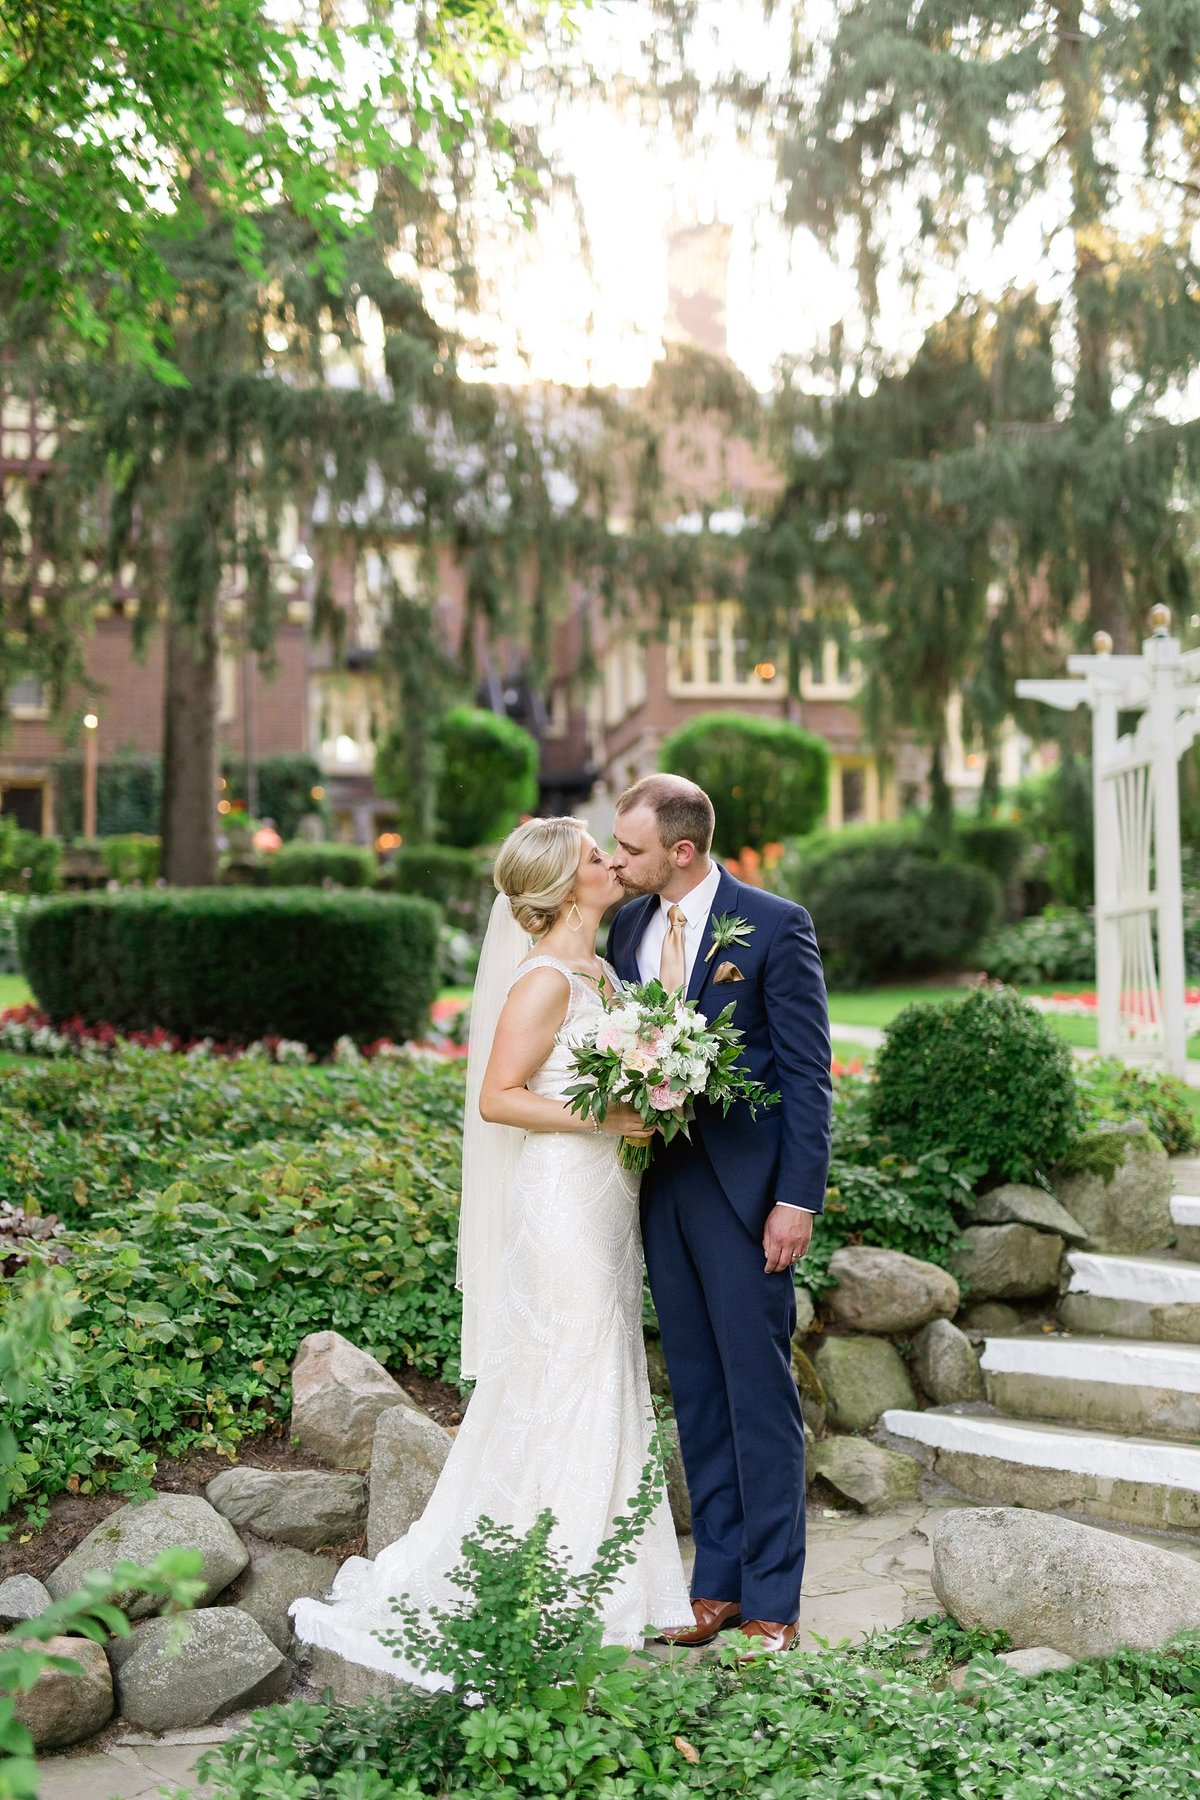 Julie-Barry-English-Inn-Summer-Garden-Wedding-Michigan-Breanne-Rochelle-Photography81